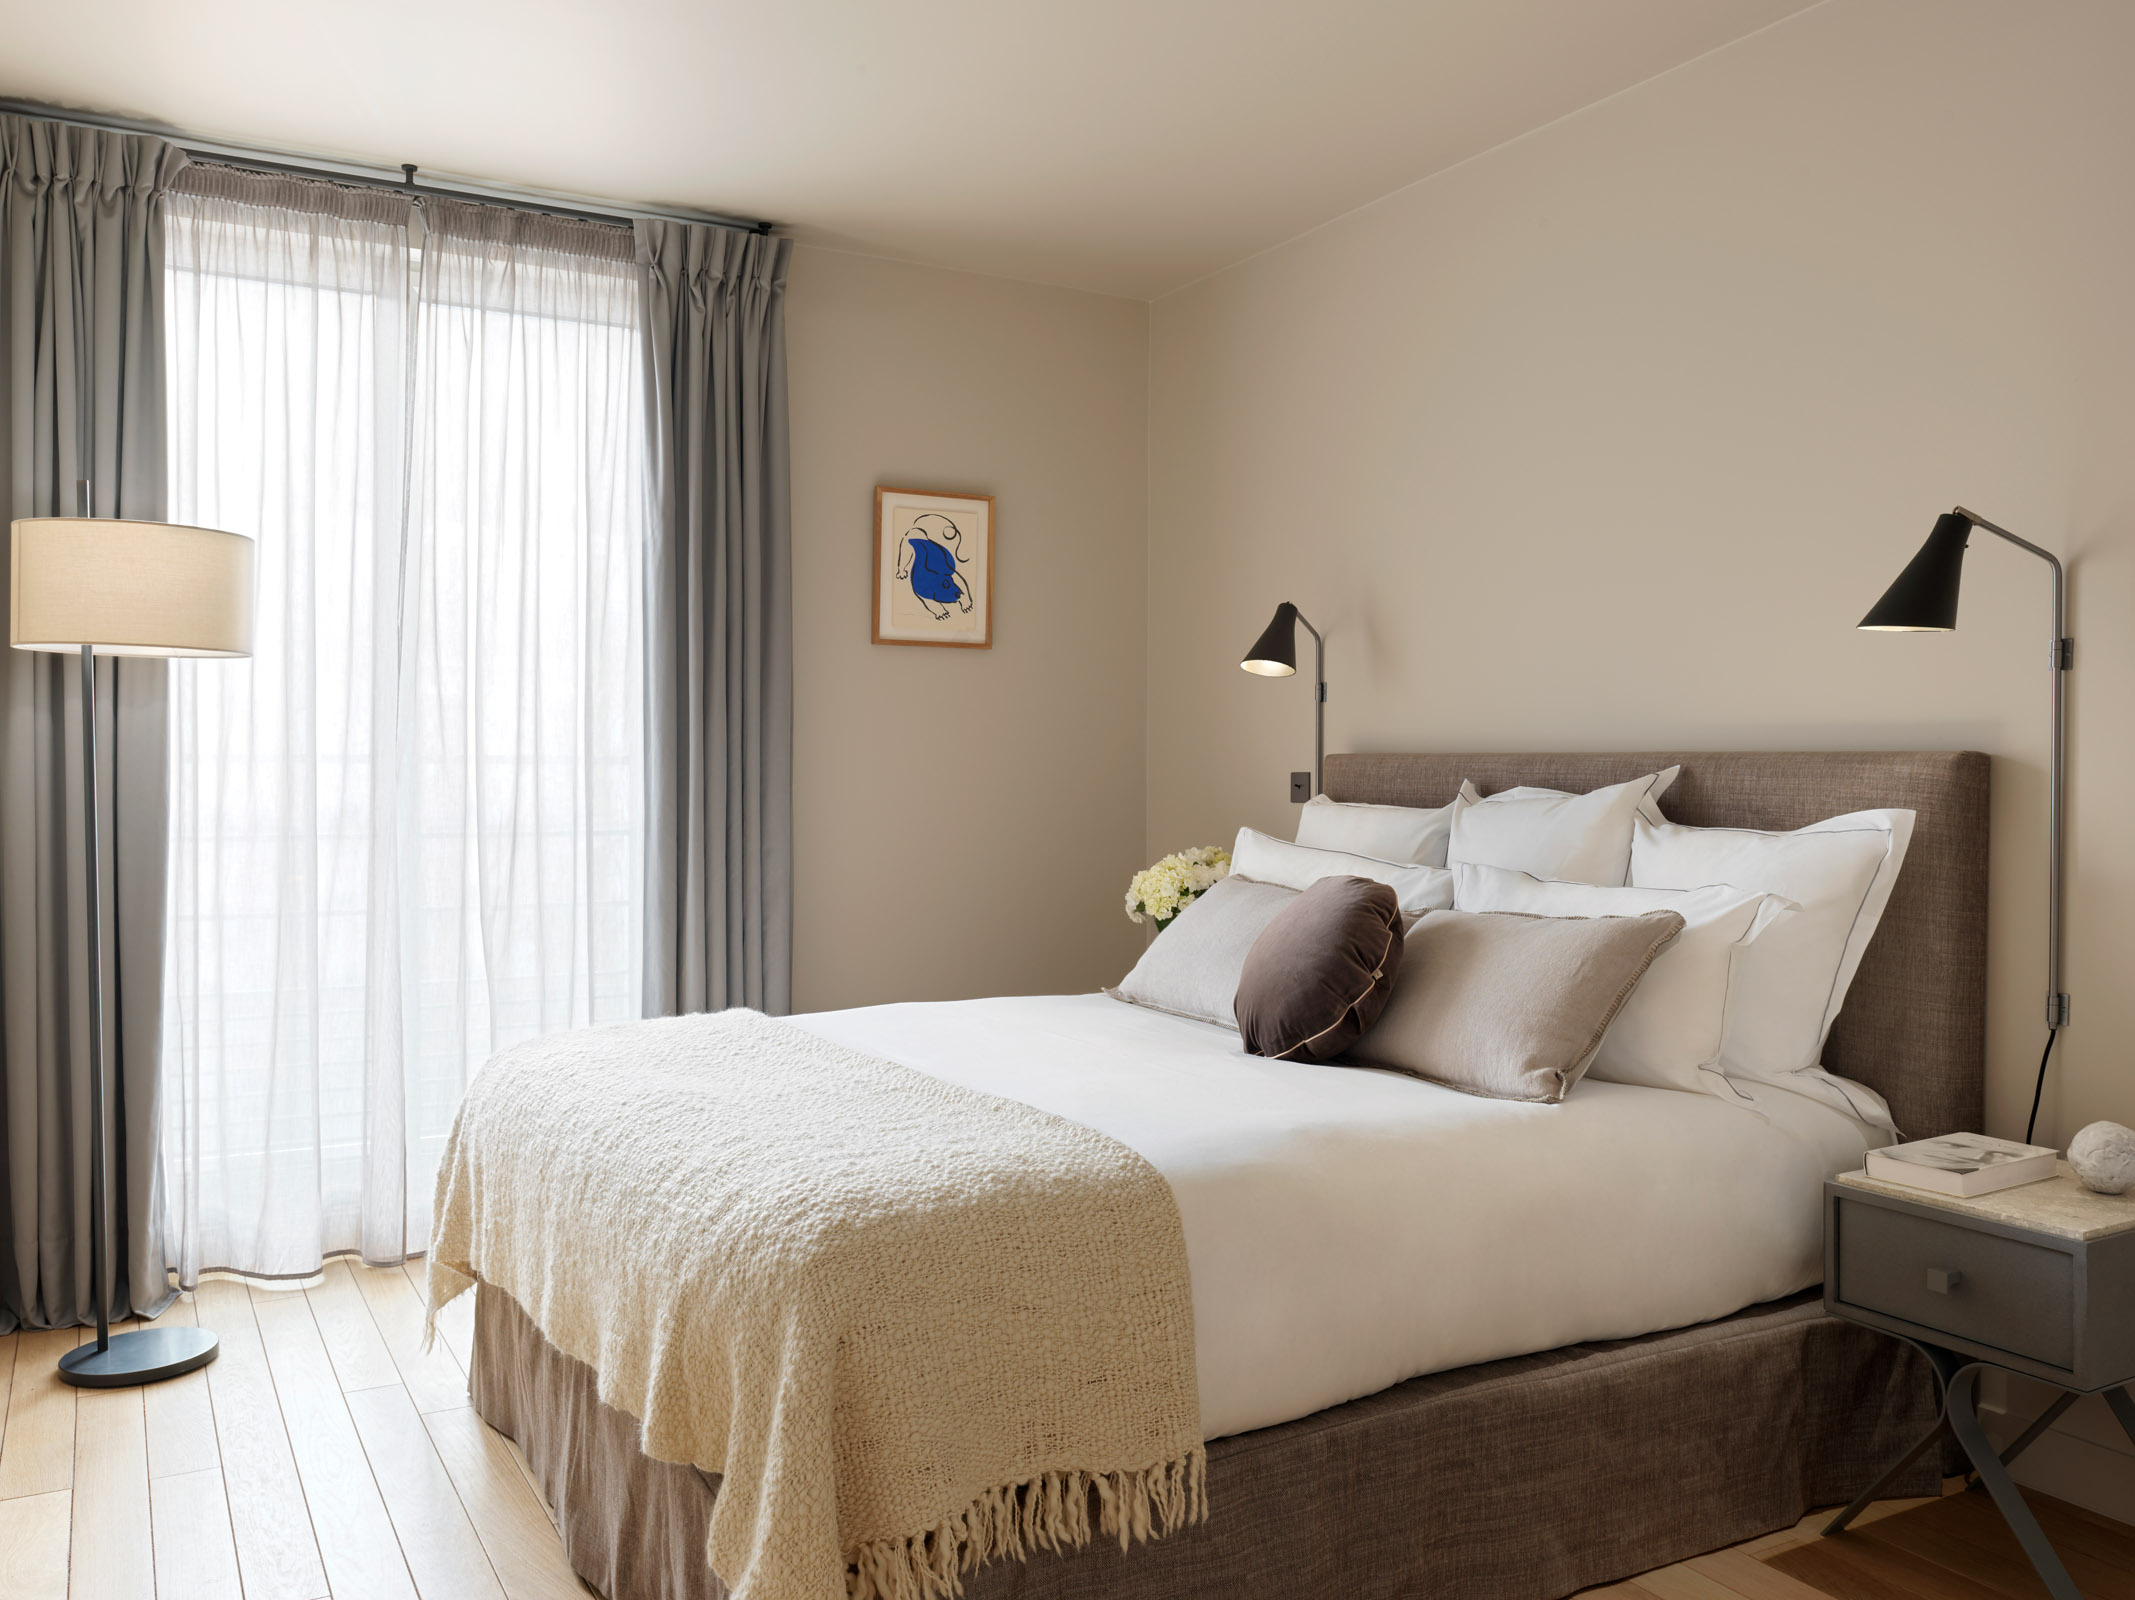 390/Photos/Chambres/Baby/hotel-pourtales-chambre-baby_mathurin_1.jpg